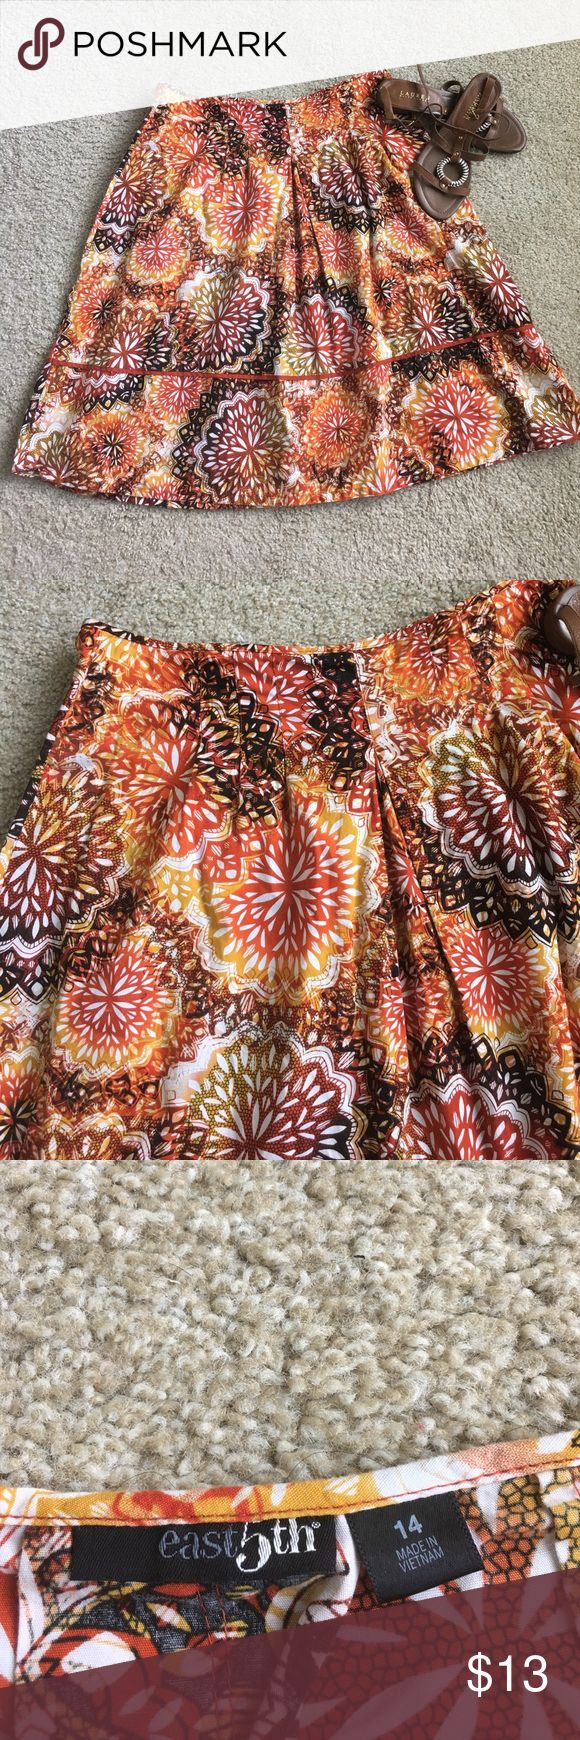 Like new Tribal print skirt Adorable skirt, in great condition. Cute Tribal print design, great for summer! Size 14. Bundle and save! East 5th Skirts A-Line or Full